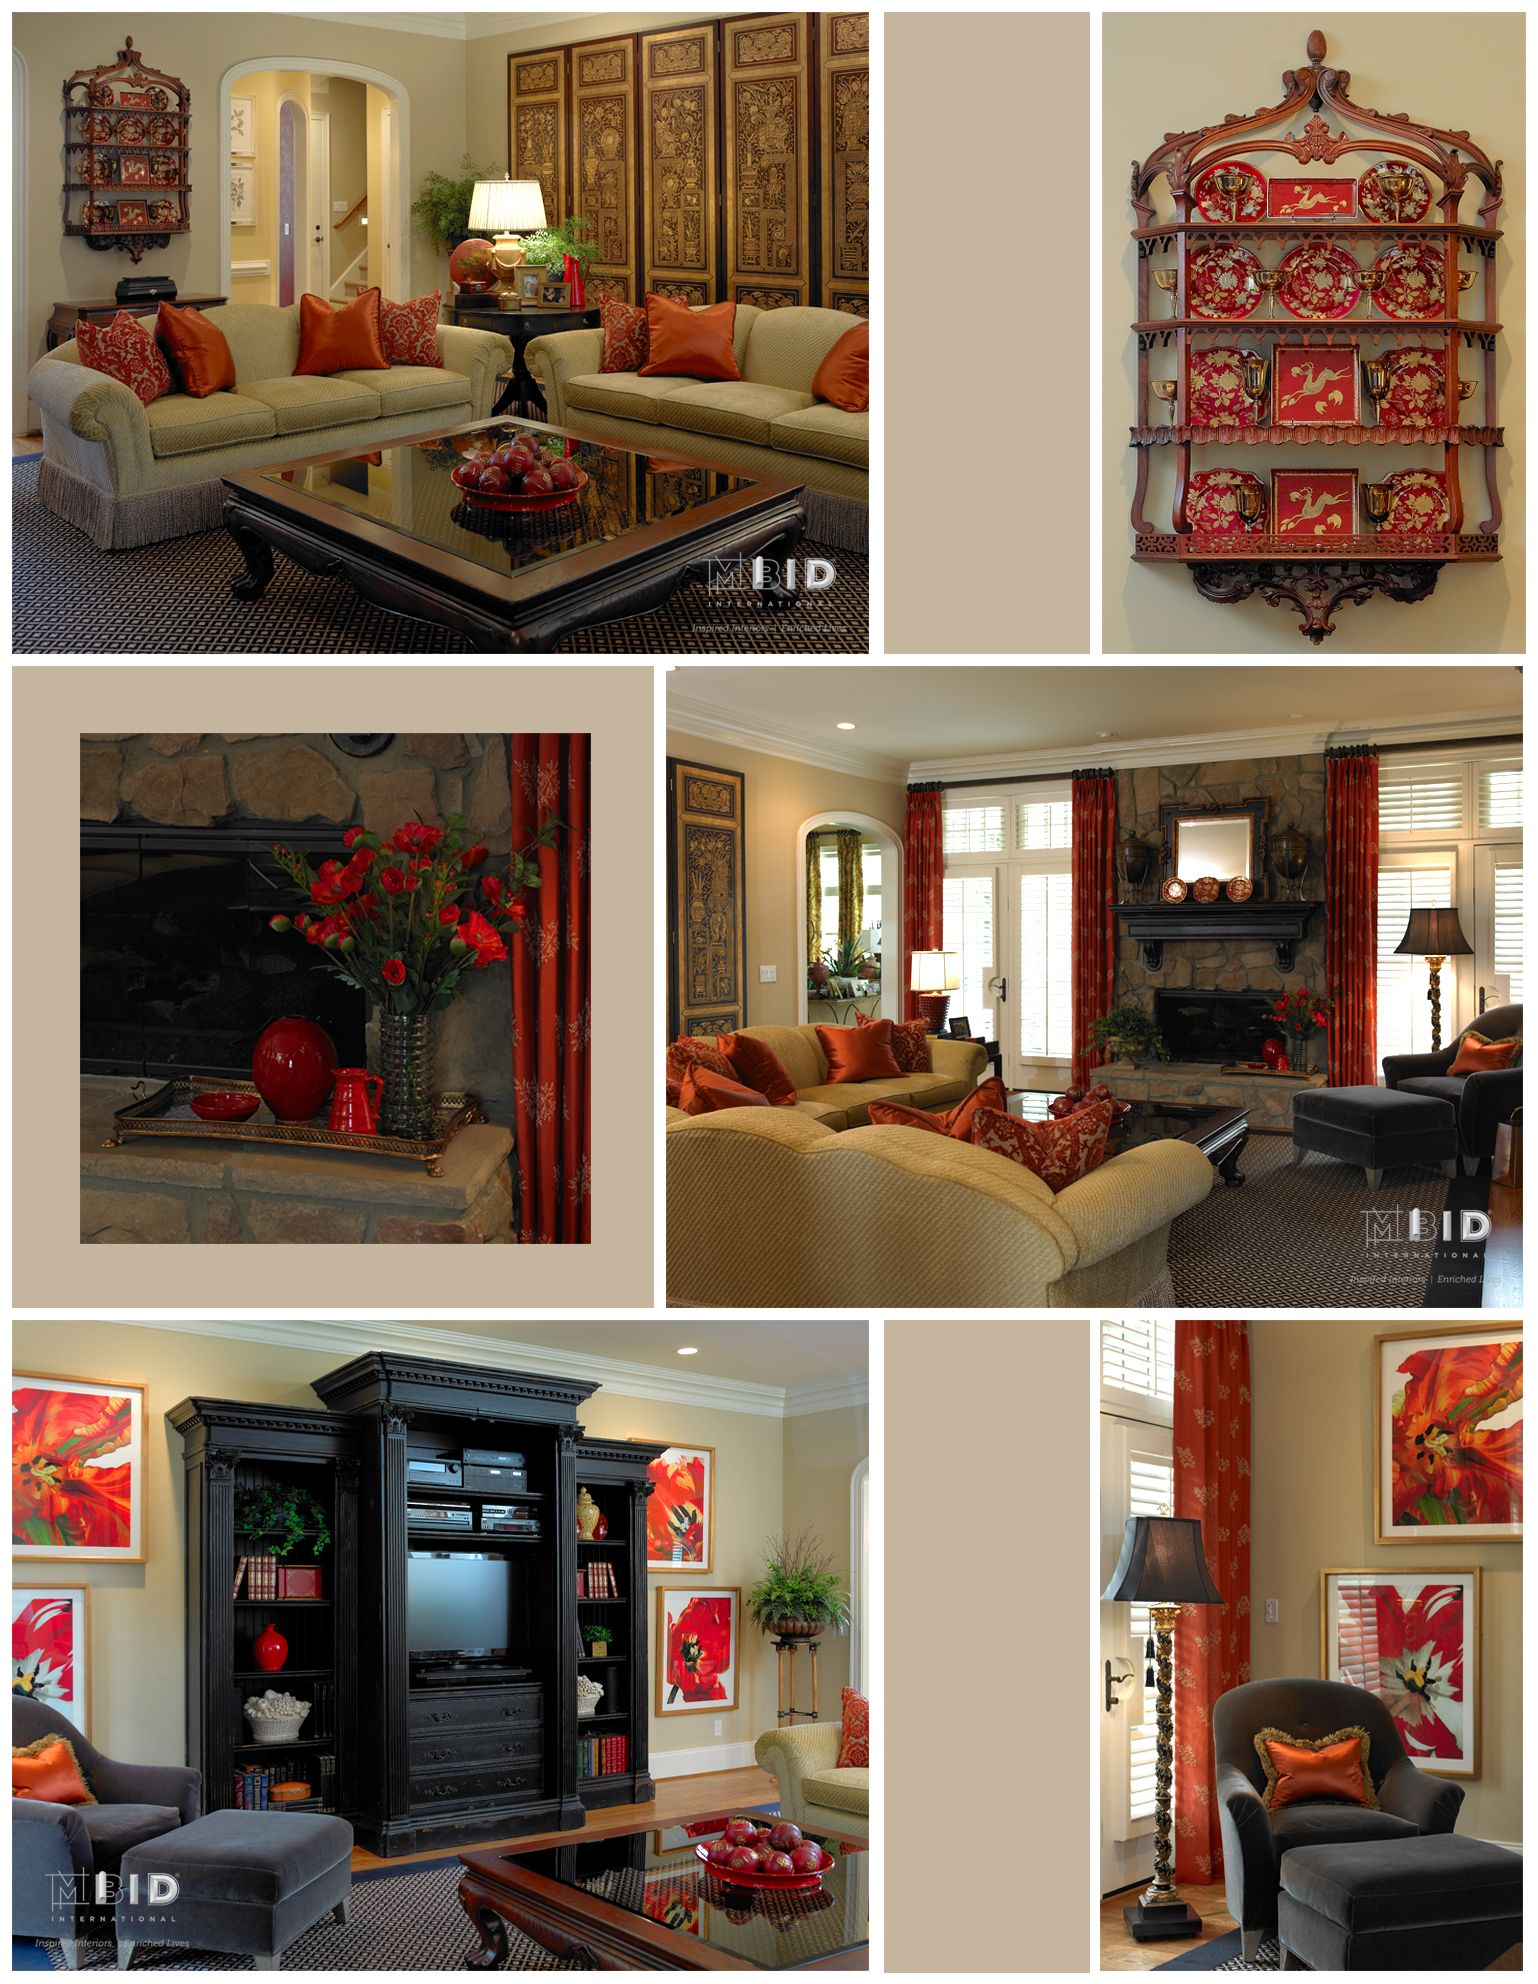 Red and Gold Asian Fusion Living Room | Interior design ...